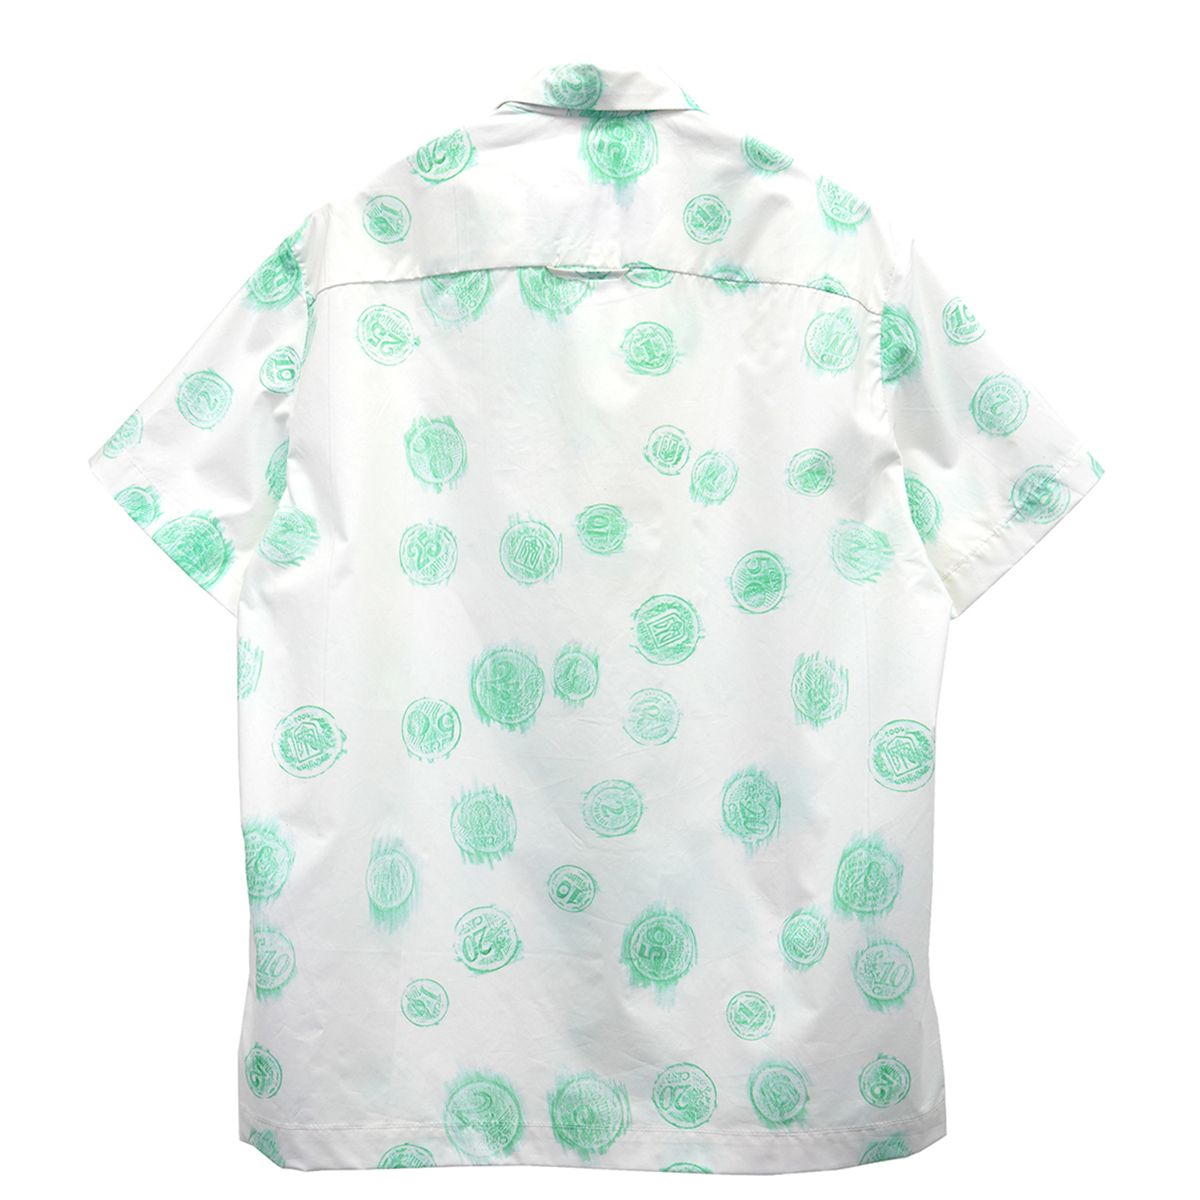 ANTON BELINSKIY HAWAIIAN SHIRT / PRINT WHITE AND GREEN COINS